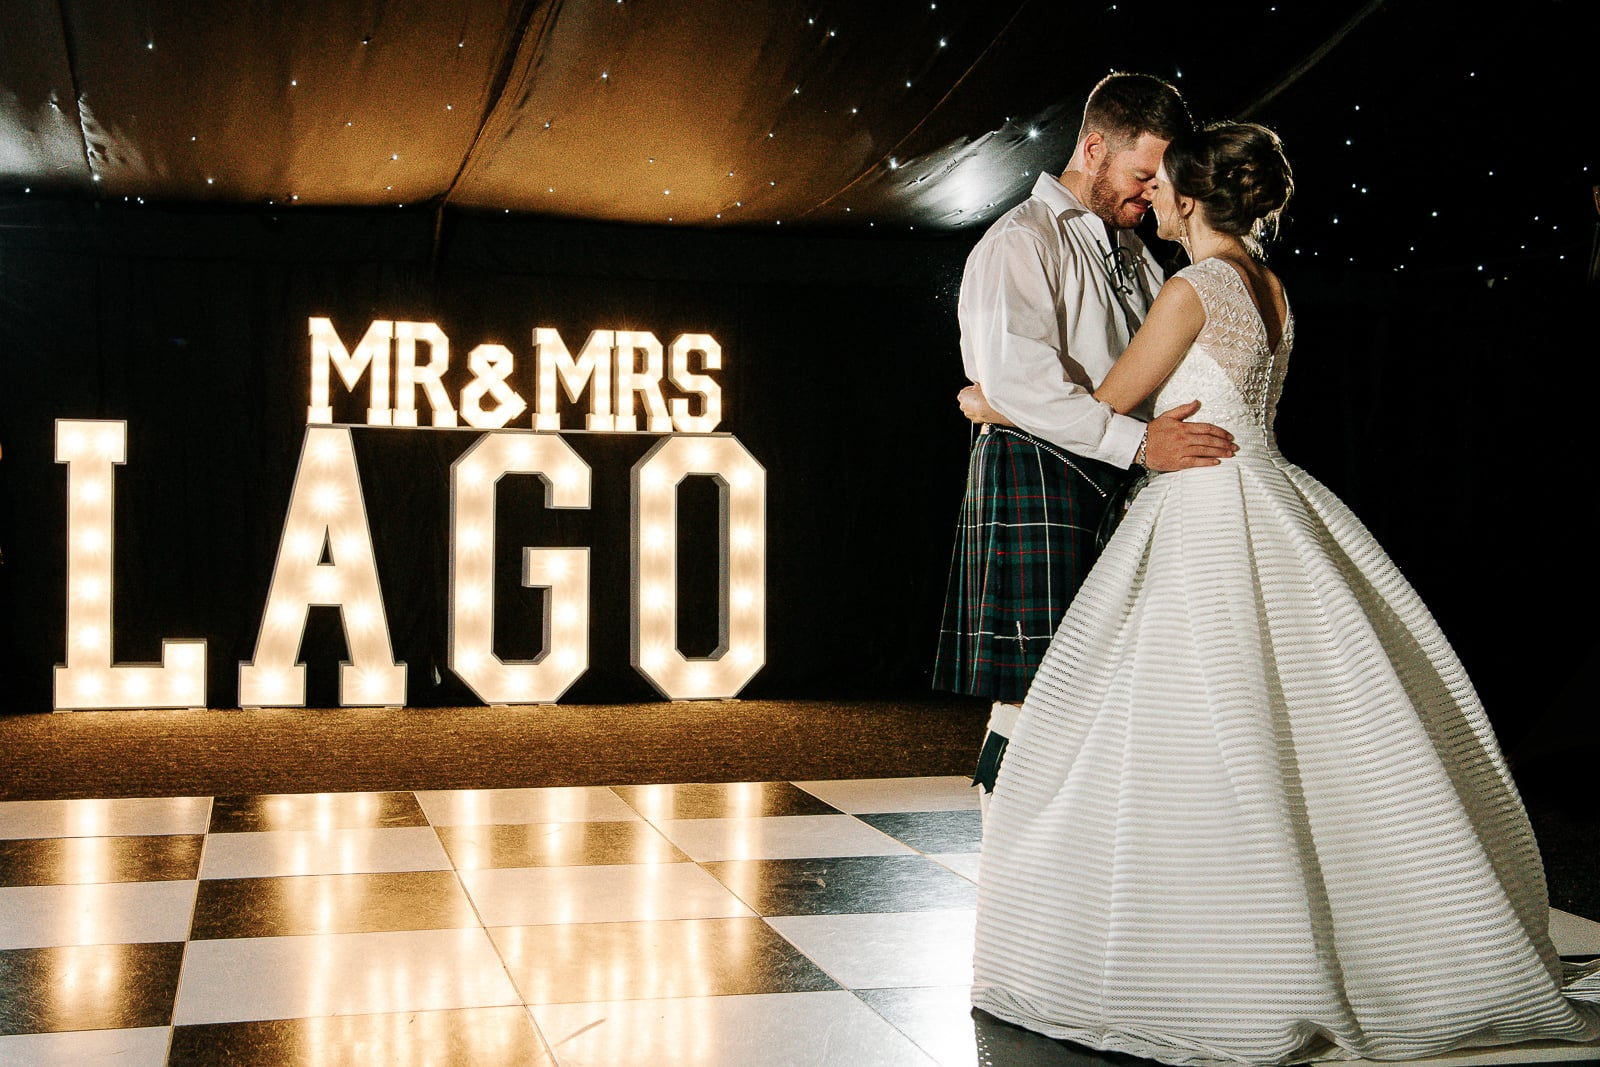 first dance with light up sign behind